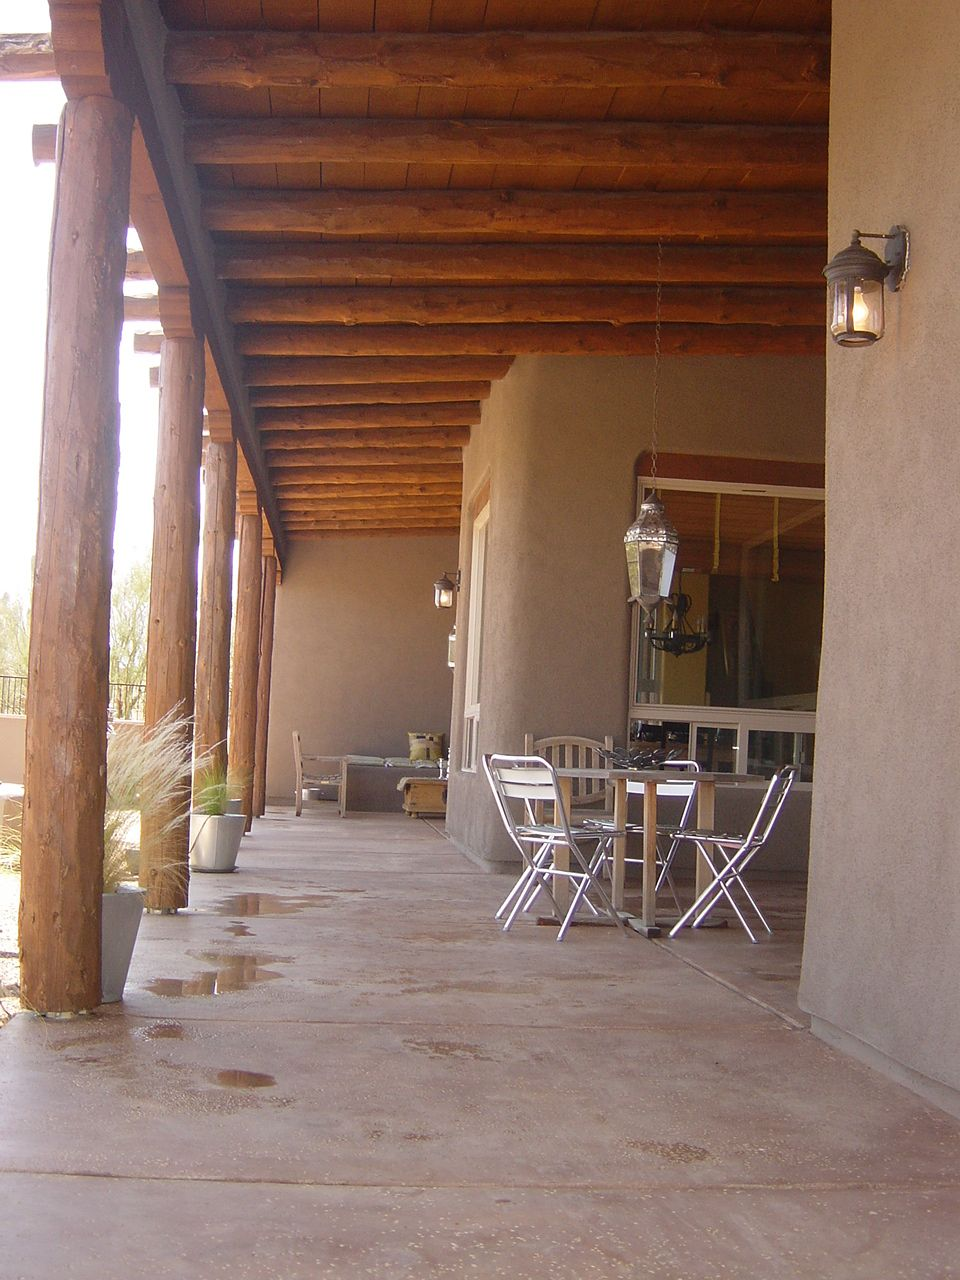 Santa festyle rear porch in tucson az places i have lived or